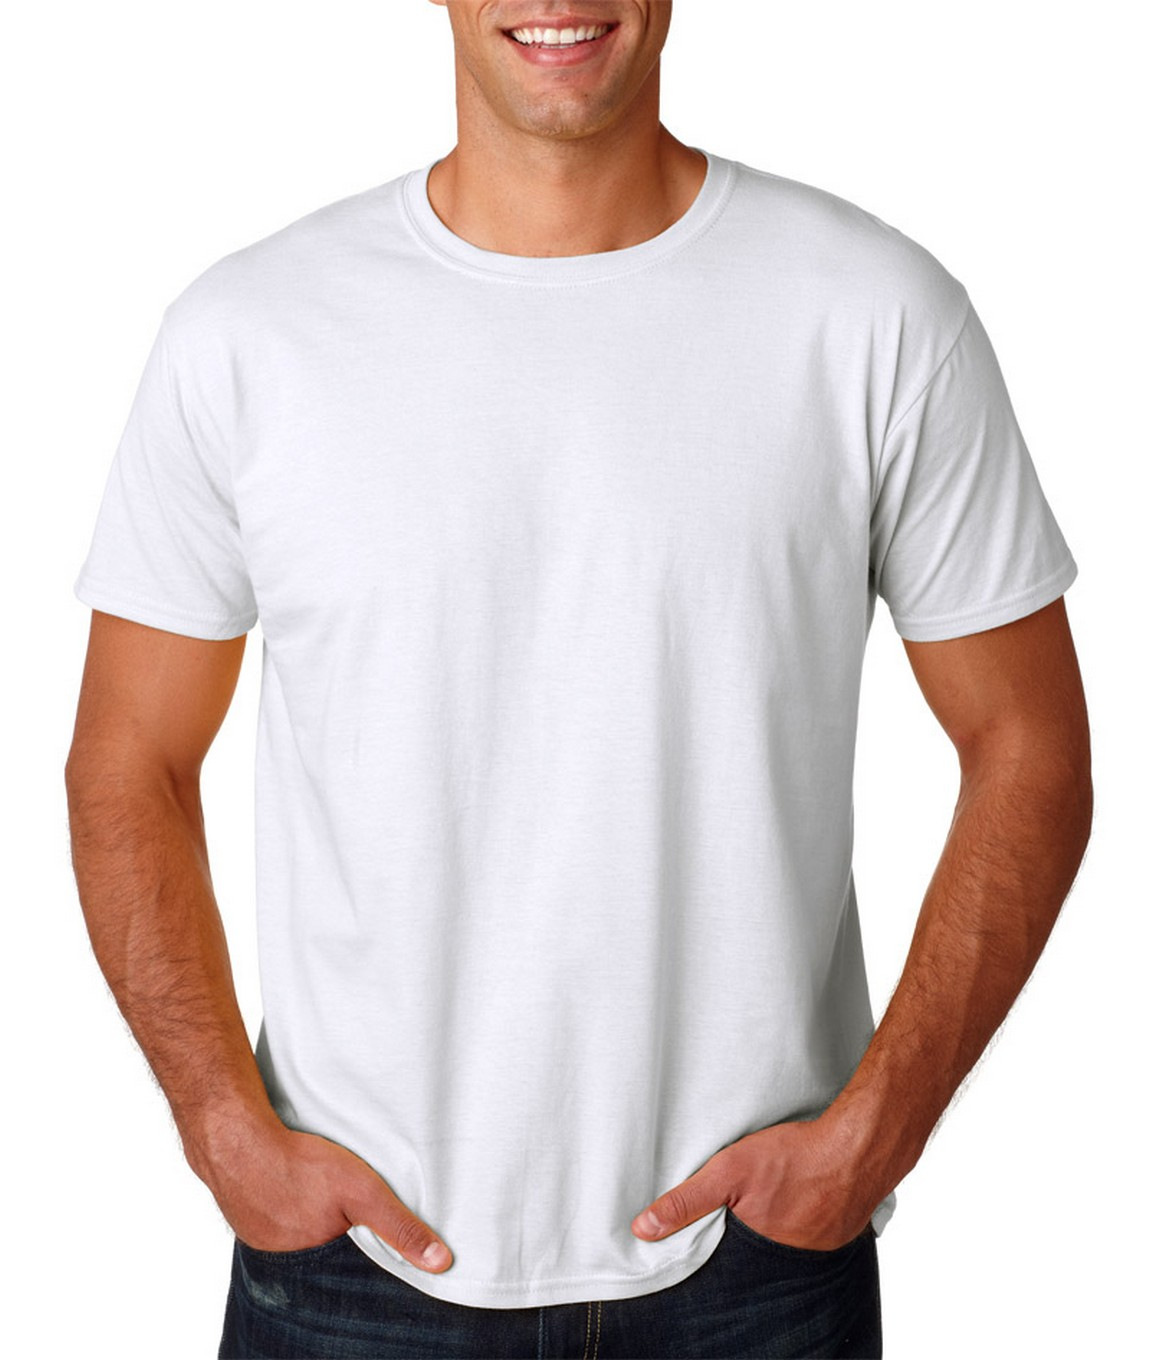 Blank t shirt clipartsco for T shirt template with model